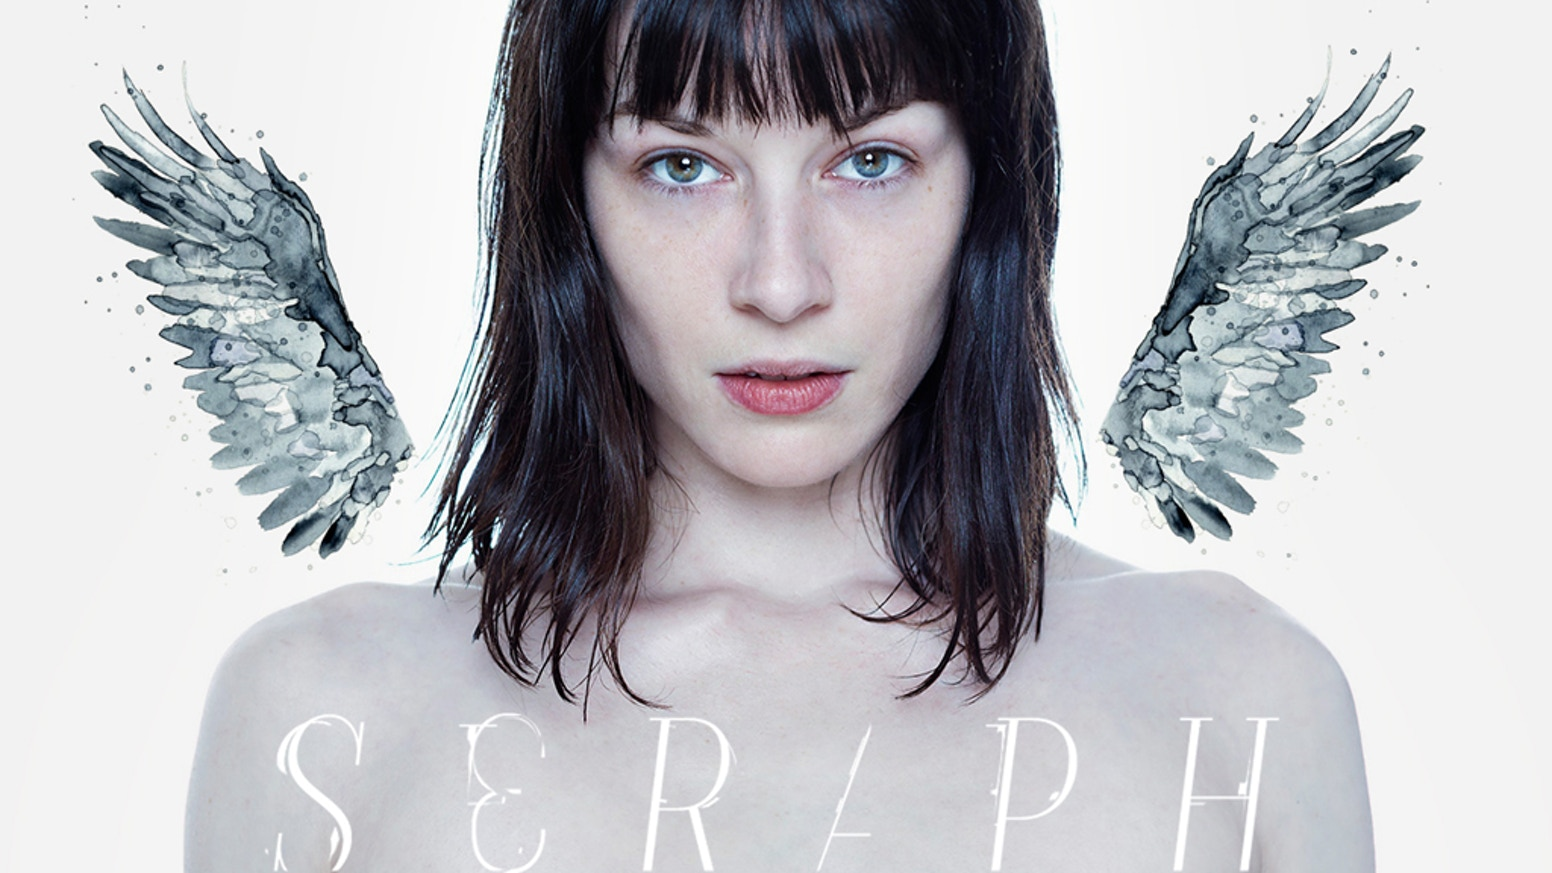 Agency in Nude Portraits, via Seraph: Strength Laid Bare